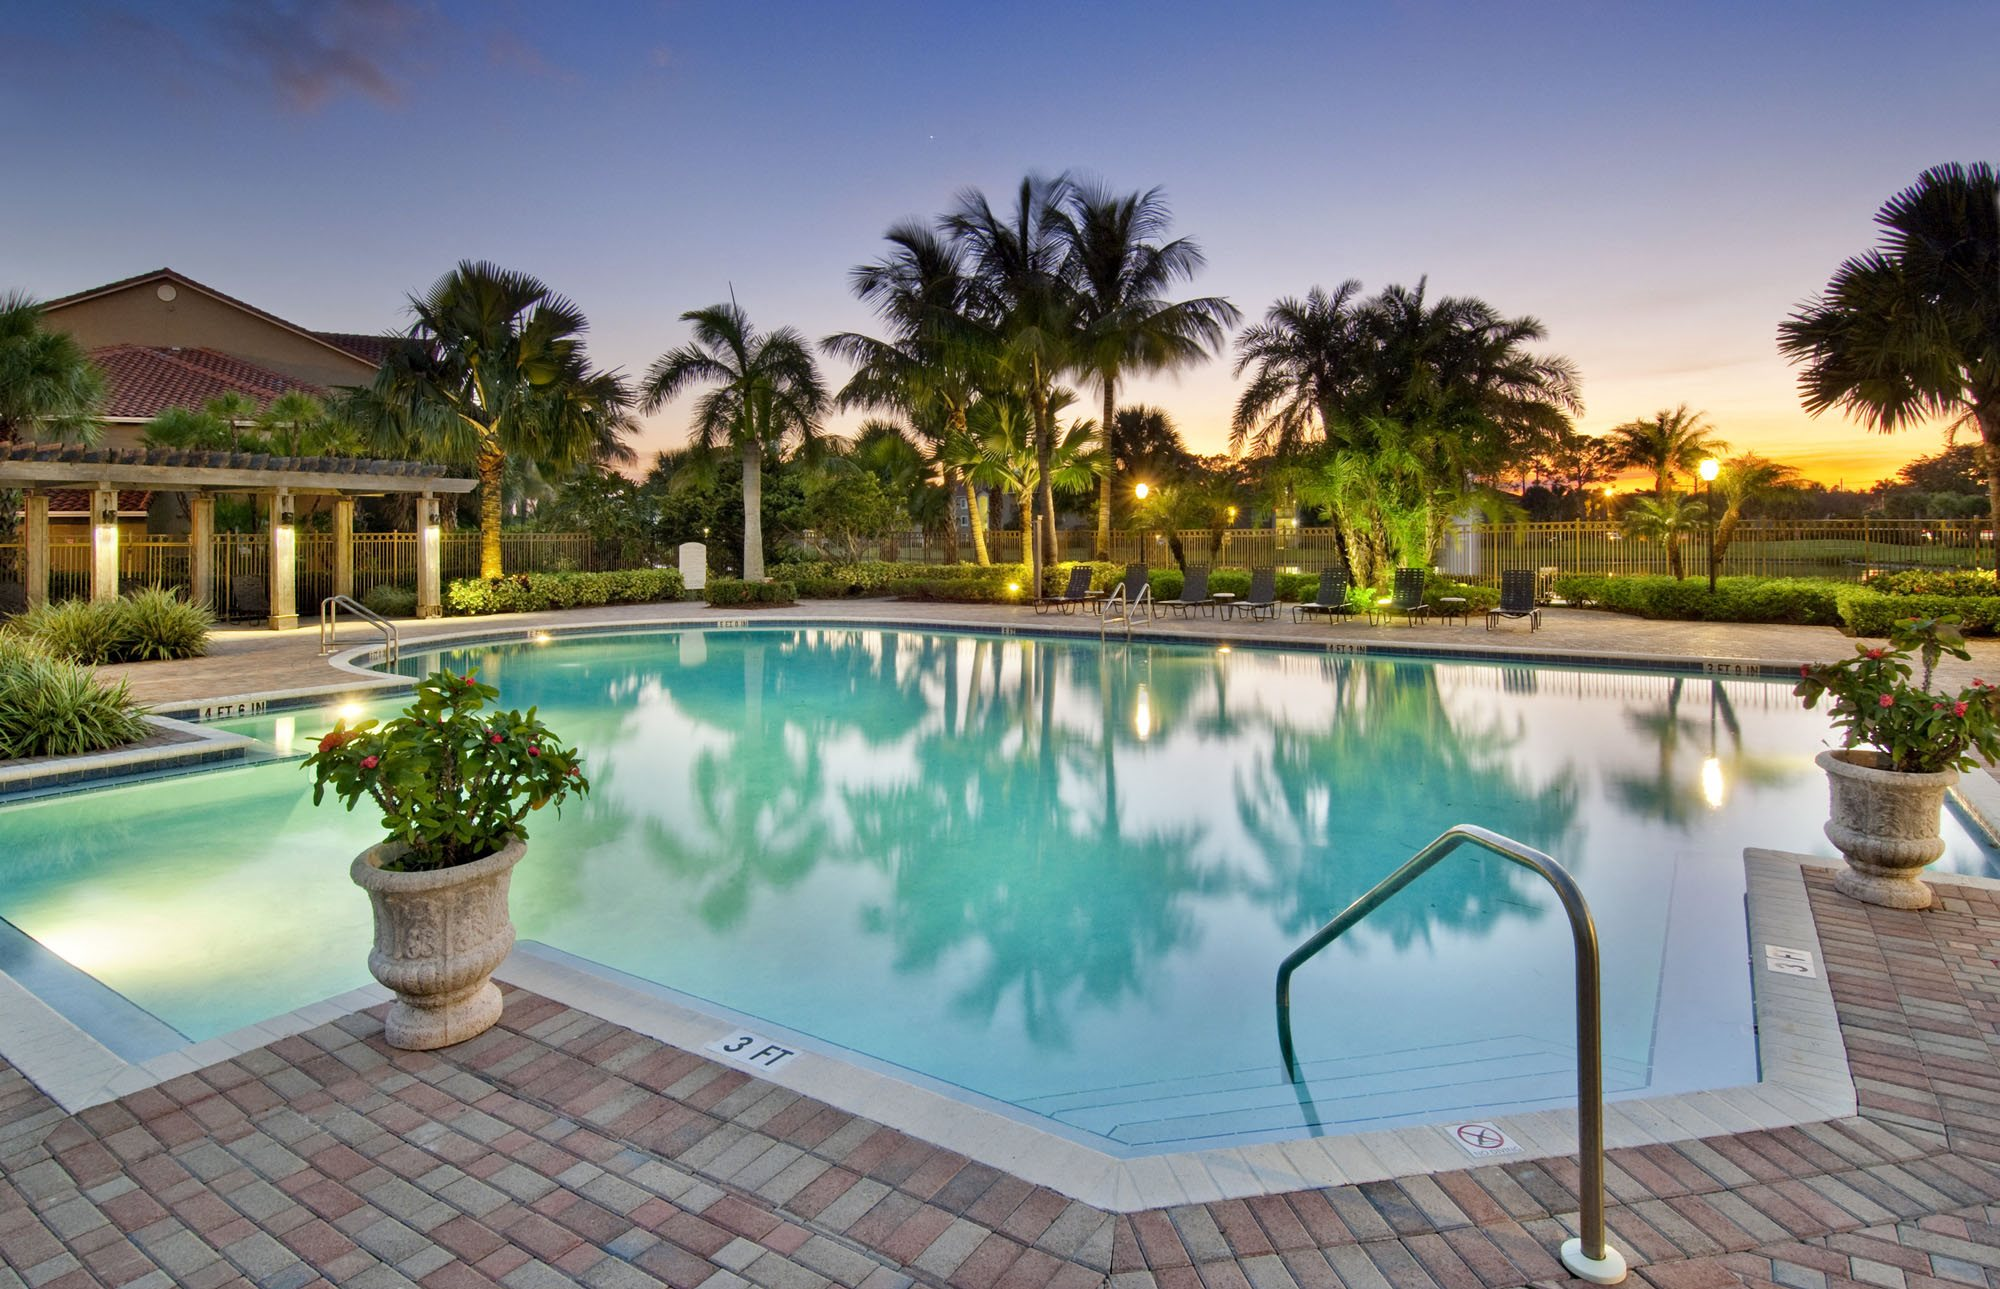 Swimming pool at dusk with sundeck and potted plants with clubhouse and palm trees in the background